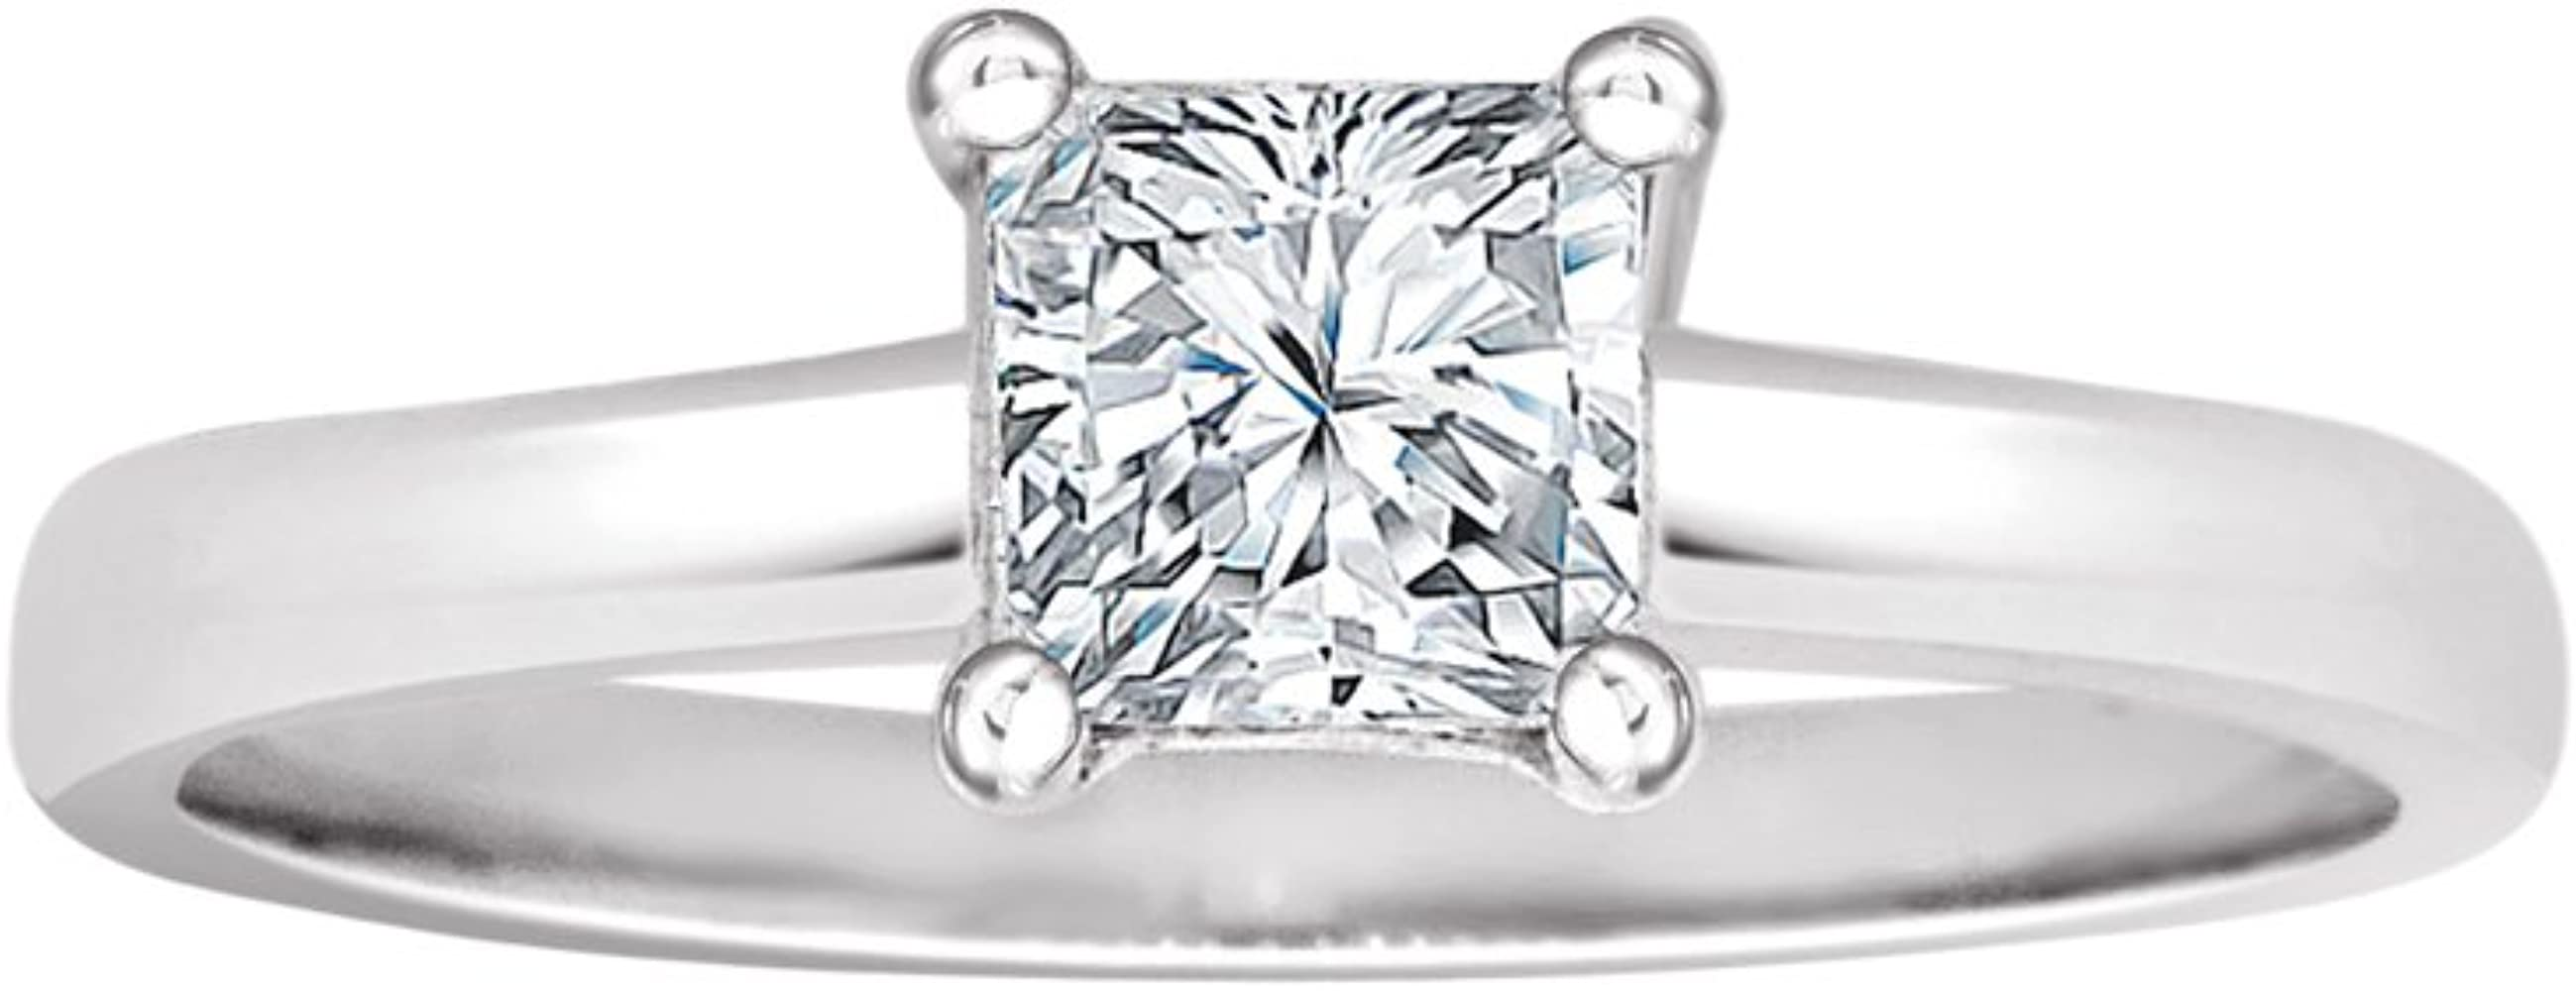 14k White Gold Solitaire Lady Engagement Ring Princess Cut Created Cz Crystals 5mm 0 75ct Amazon Com